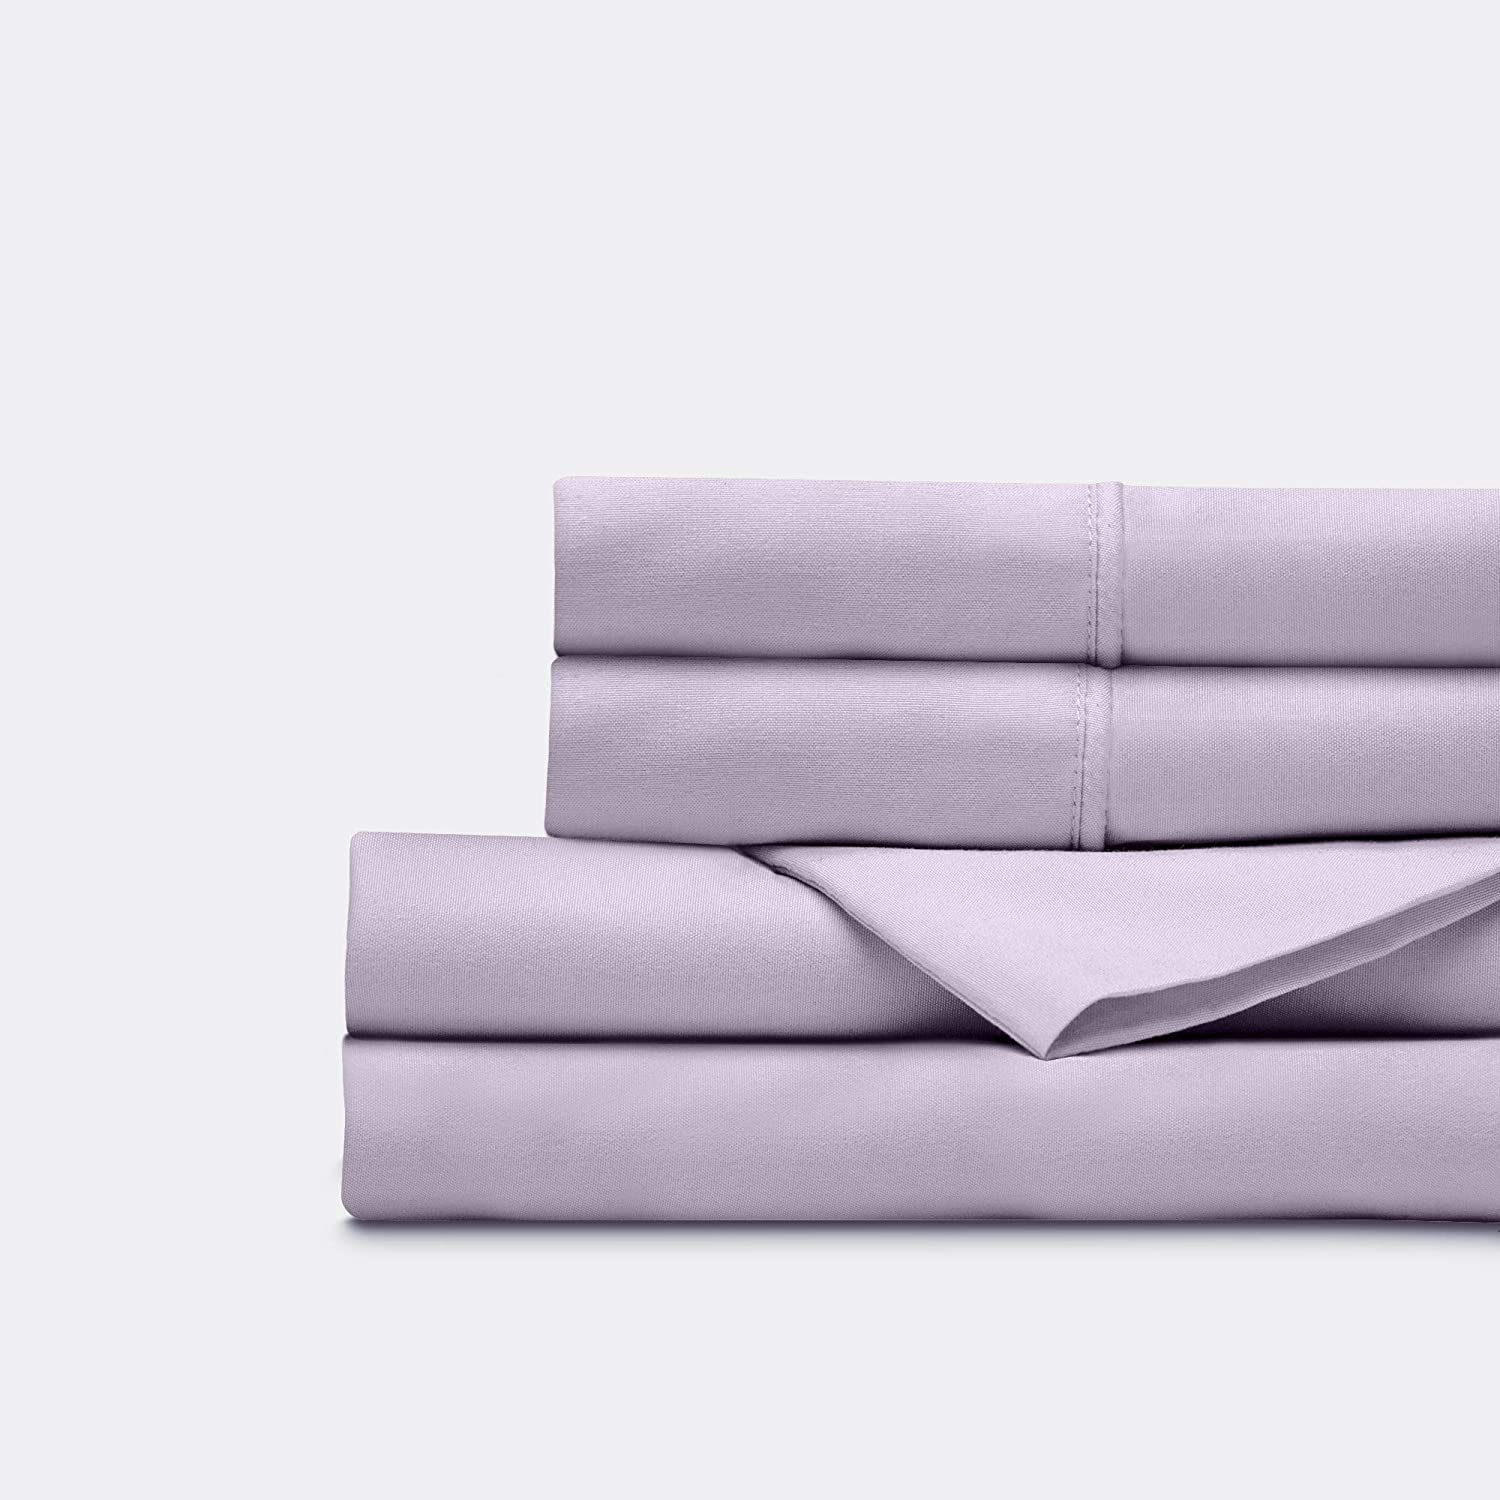 Everspread Bed Sheets (4 Piece Sheet Set), Queen Size, Lavender. Ultra-Soft & Breathable. Luxury Bedding. Deep Pockets - Fits Mattresses up to 16 inches. Hypoallergenic & Wrinkle Resistant